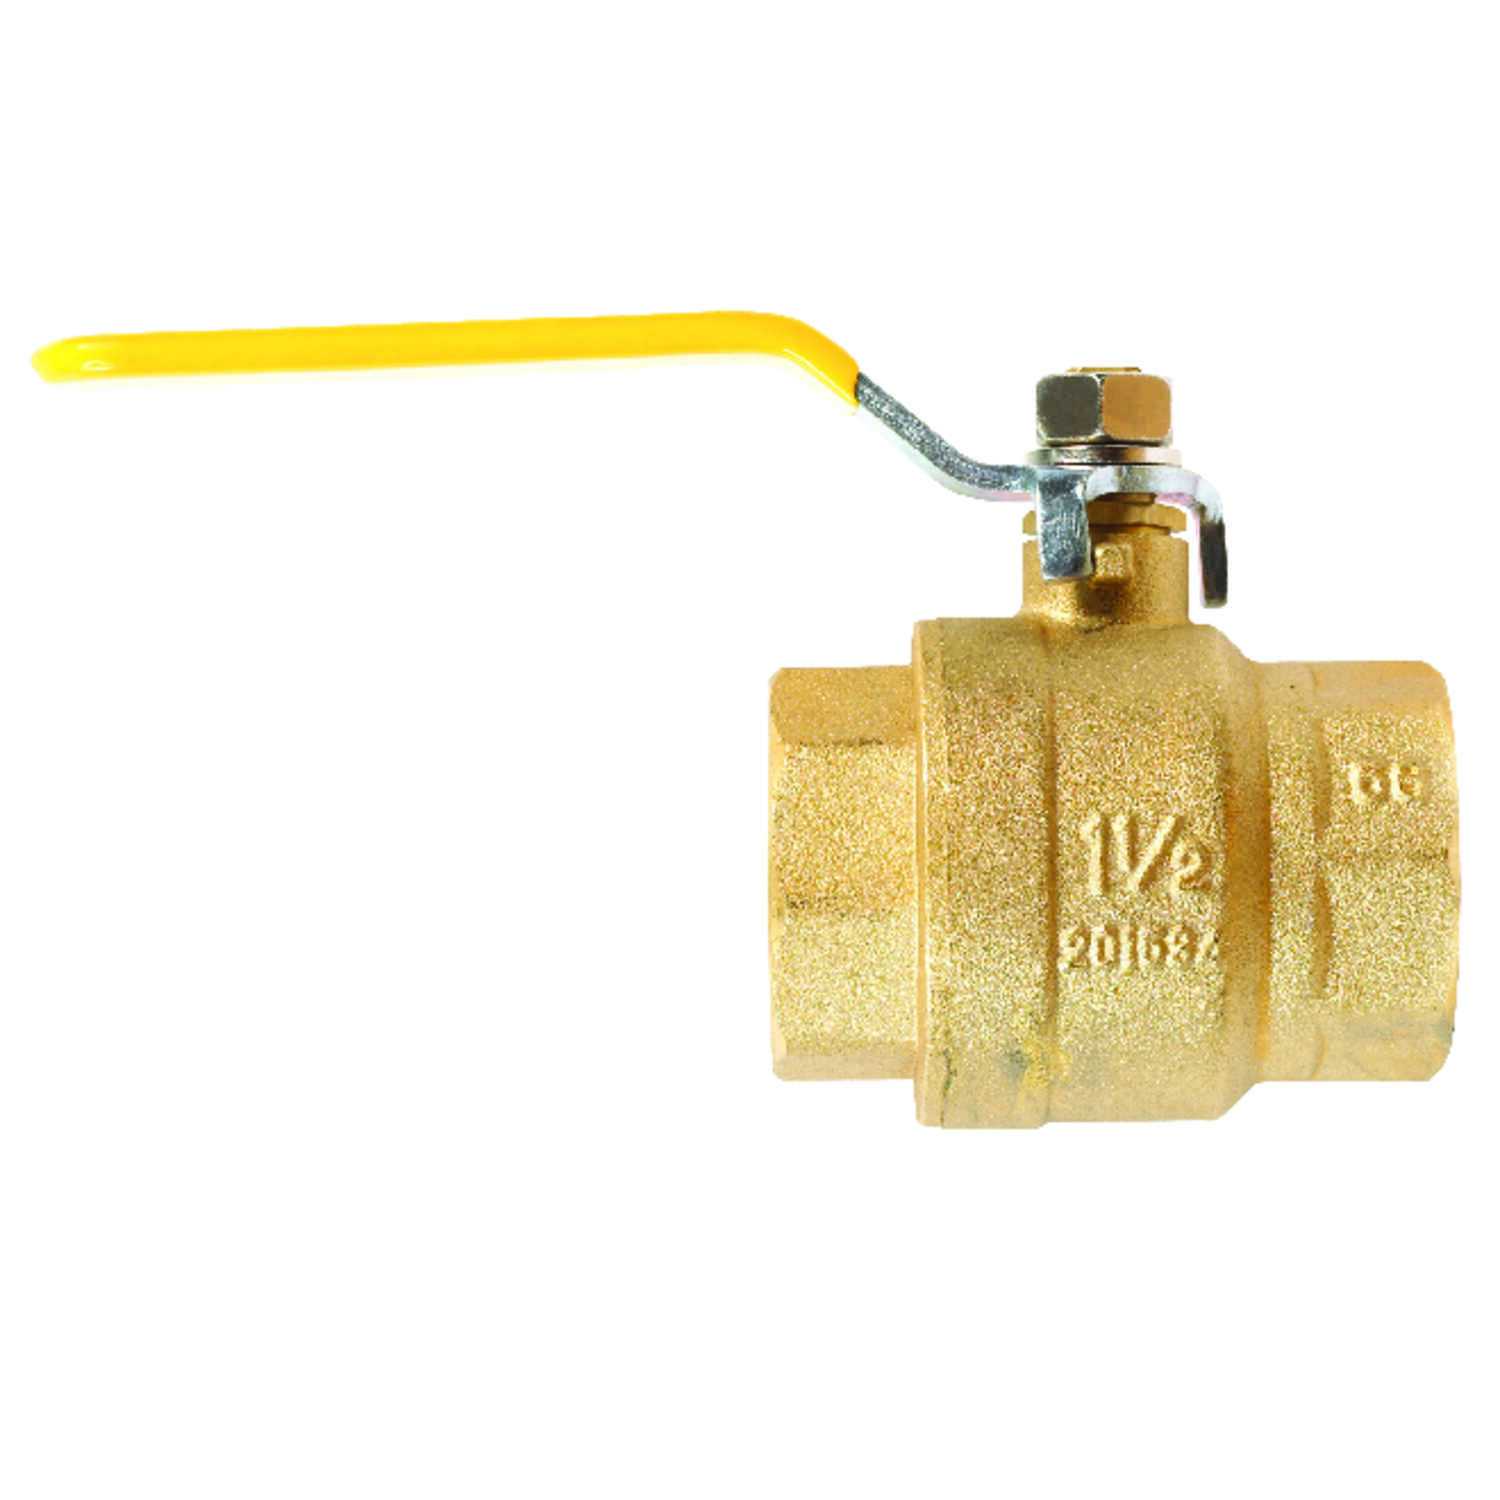 Mueller  Ball Valve  1-1/4 in. Dia. x FPT   x 1-1/4 in. Dia. FPT  Brass  Packing Gland